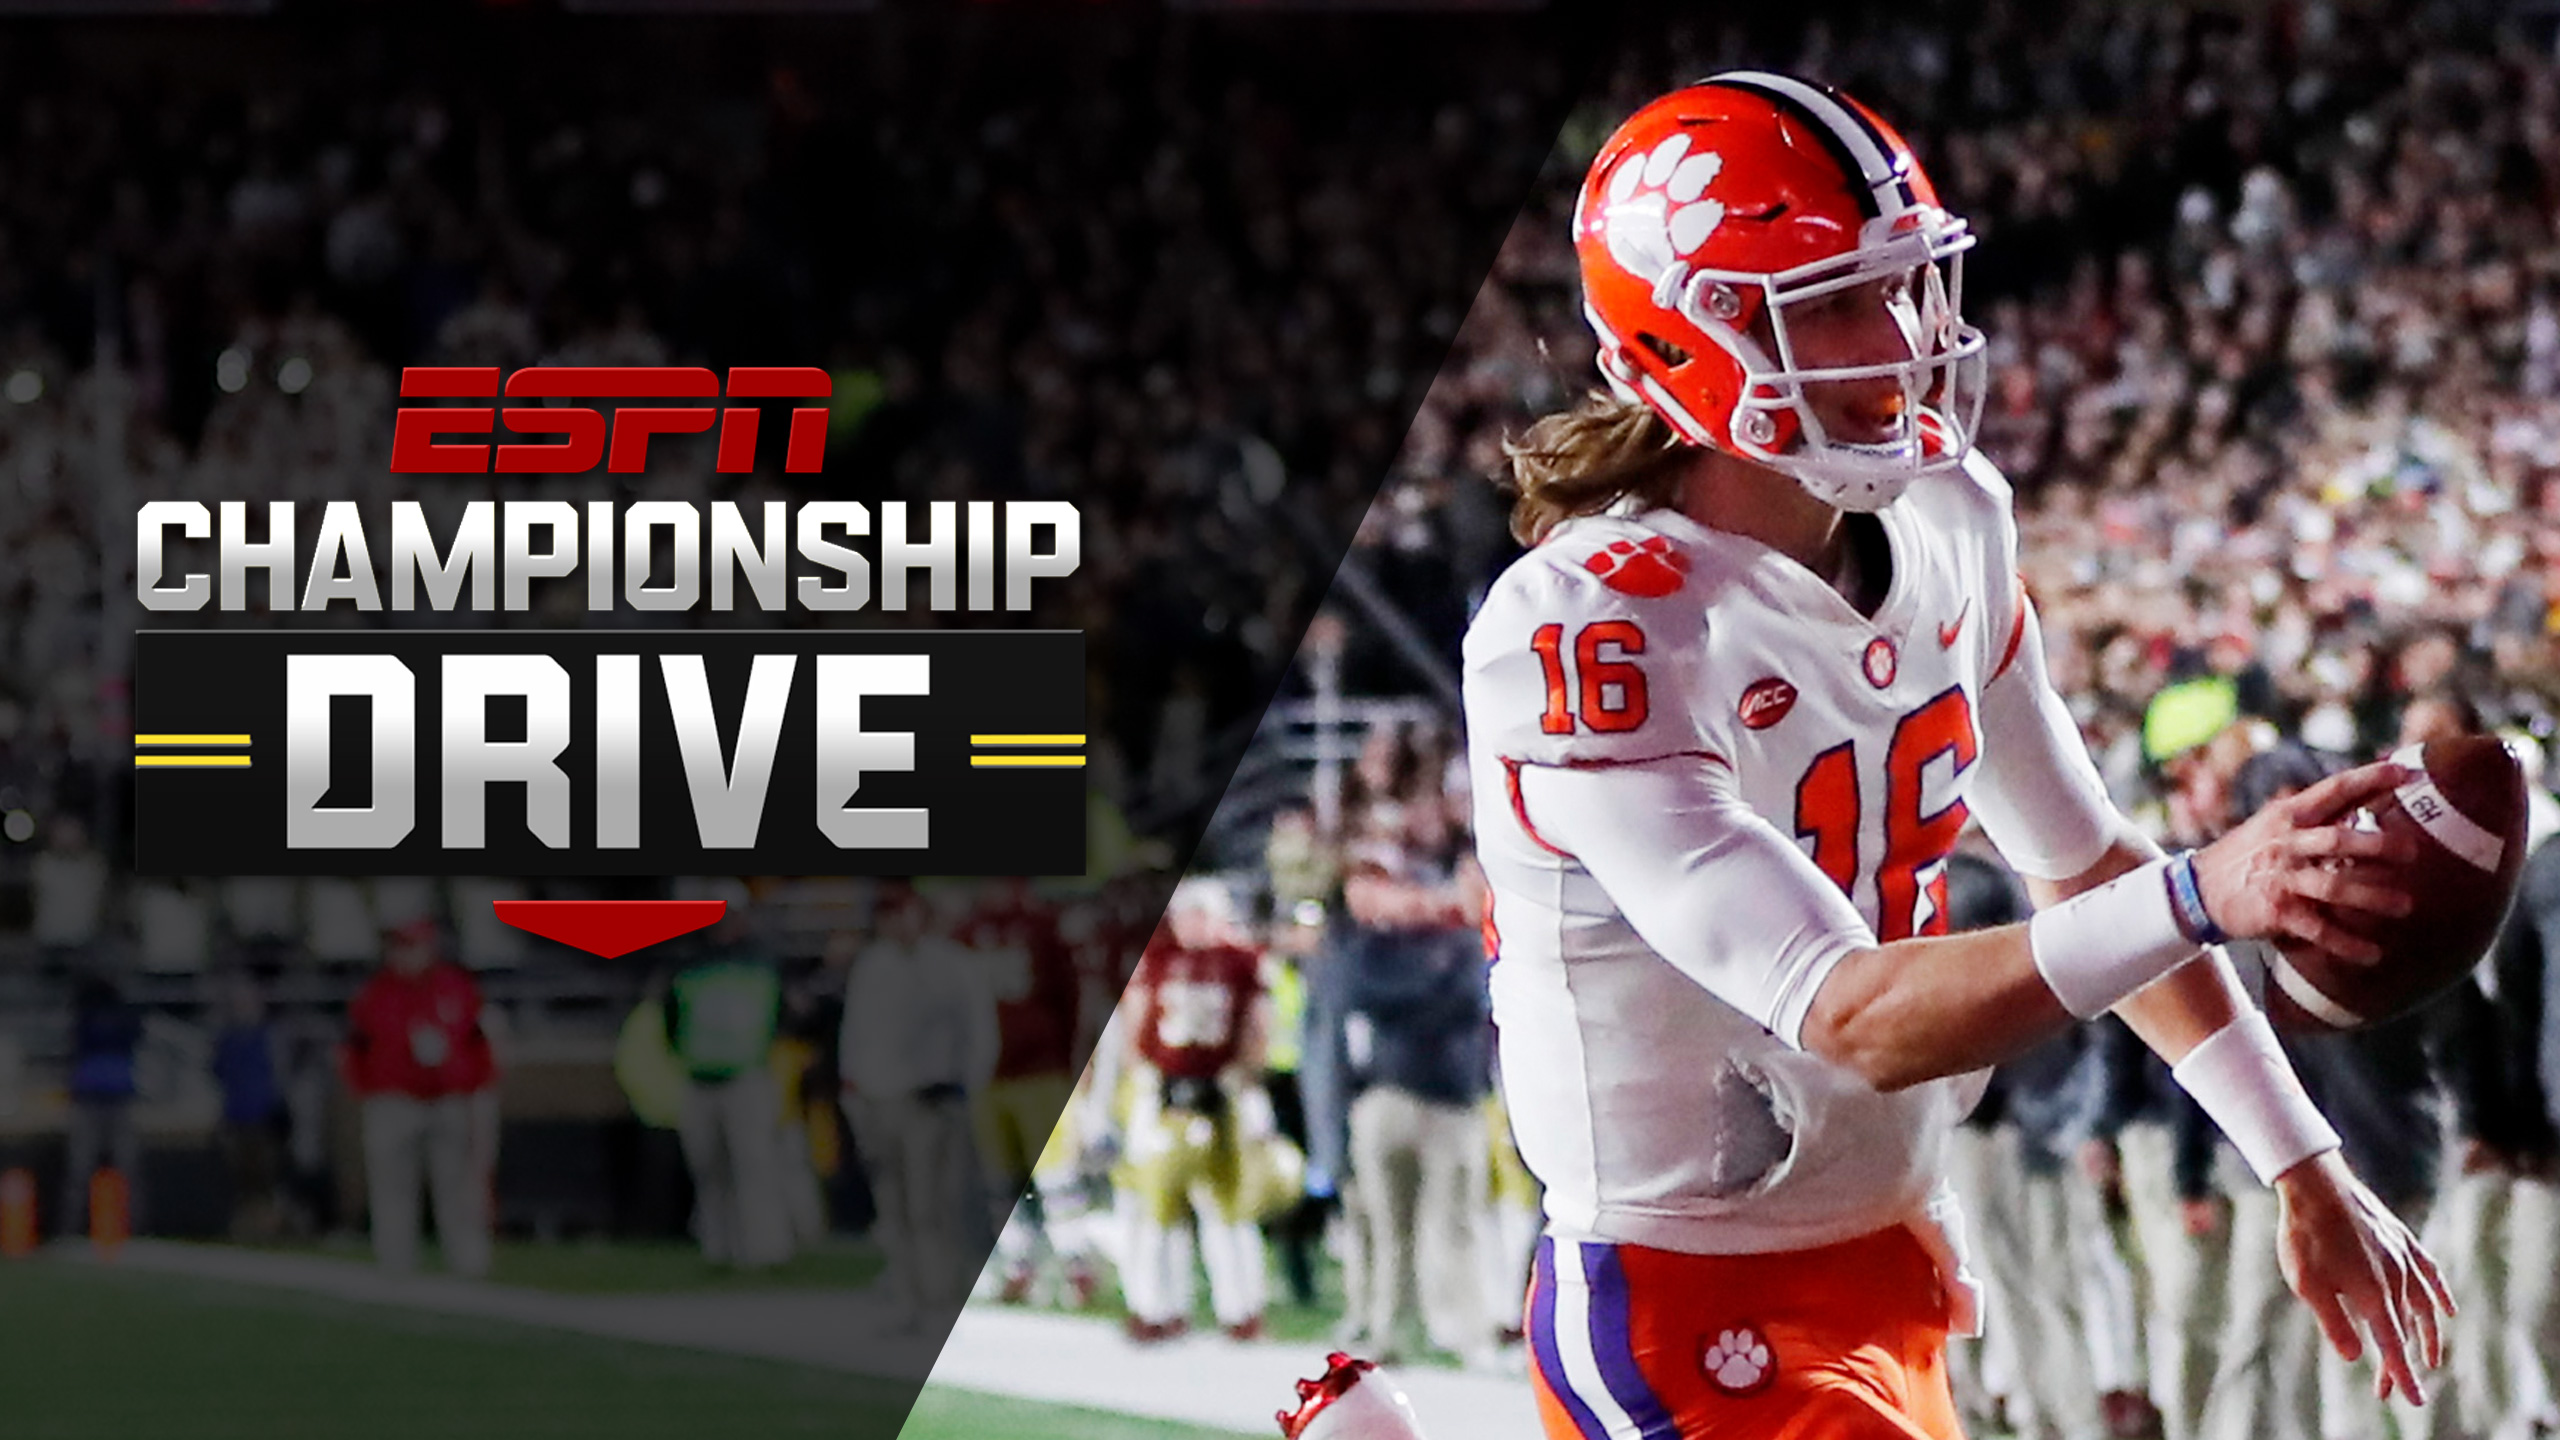 Sun, 11/11 - Championship Drive: Who's In? Presented by PlayStation